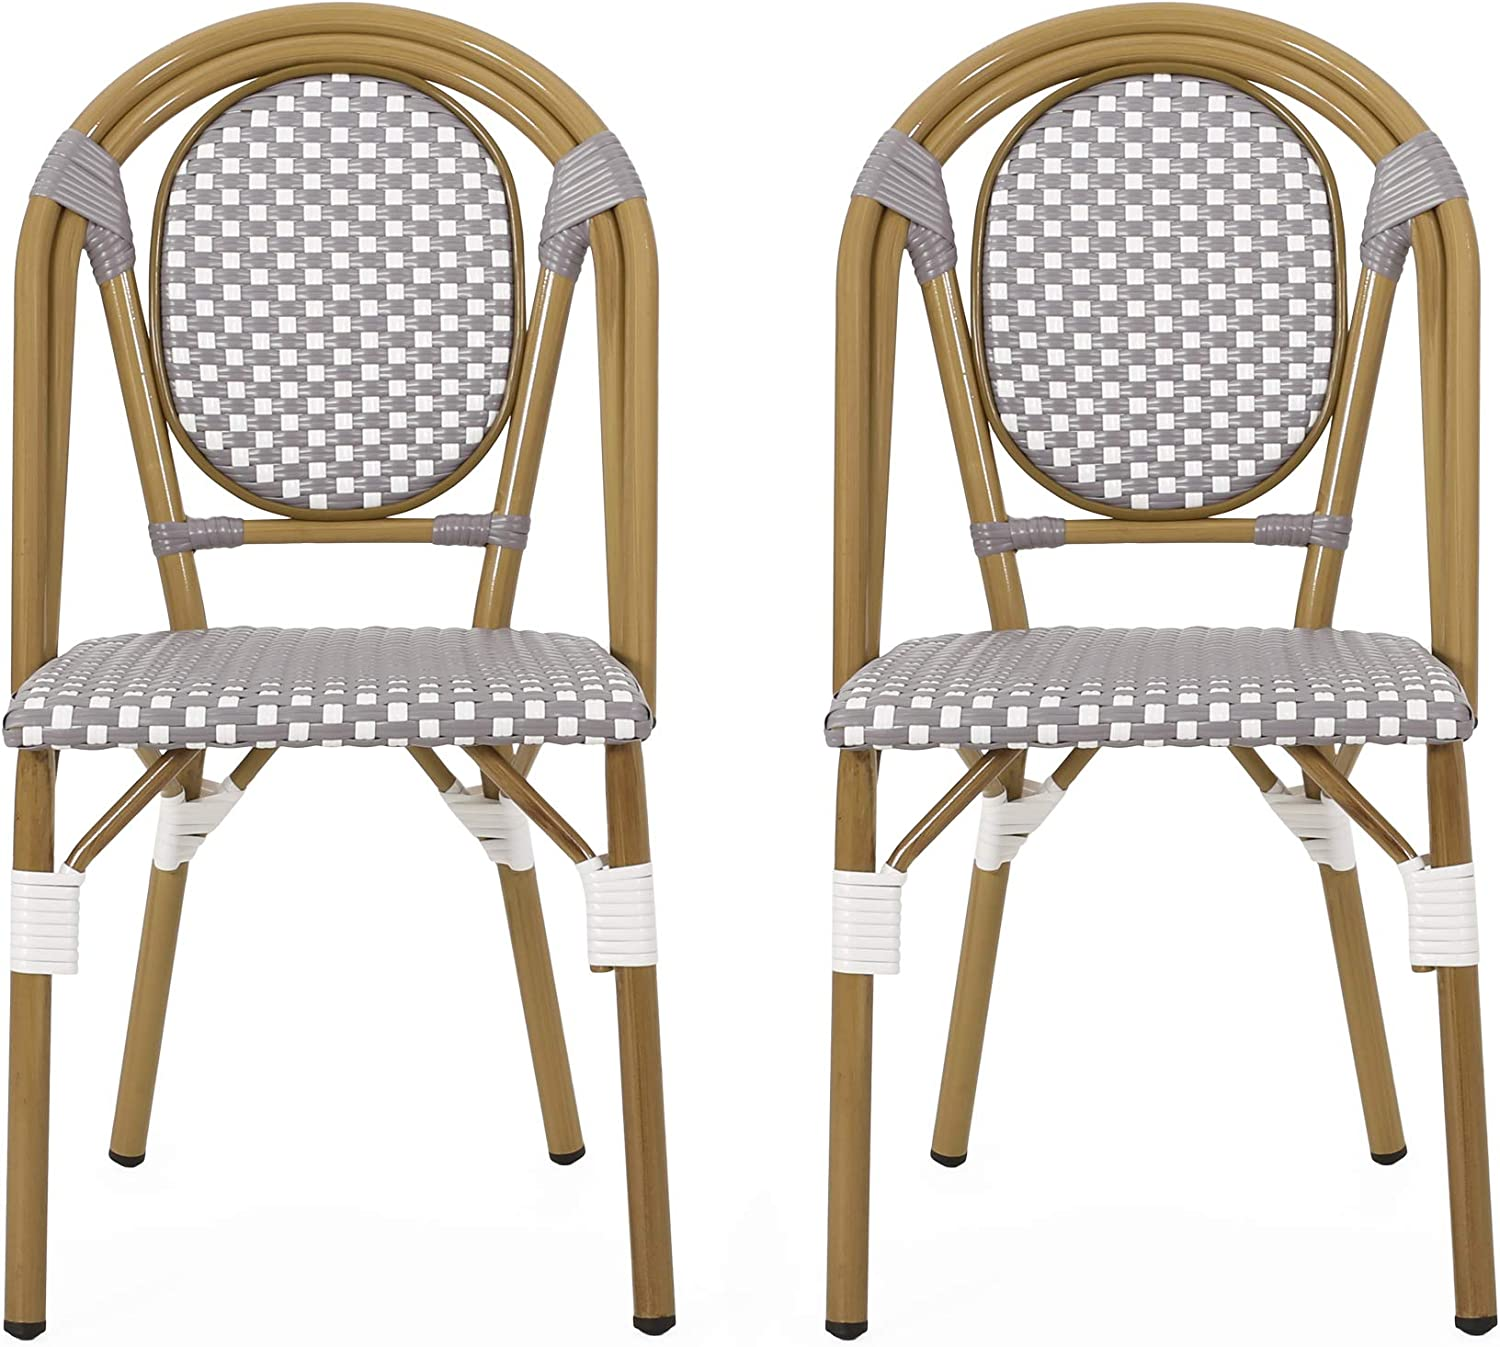 Amazon Com Christopher Knight Home 313245 Gwendolyn Outdoor French Bistro Chairs Set Of 2 Gray White Bamboo Print Finish Garden Outdoor